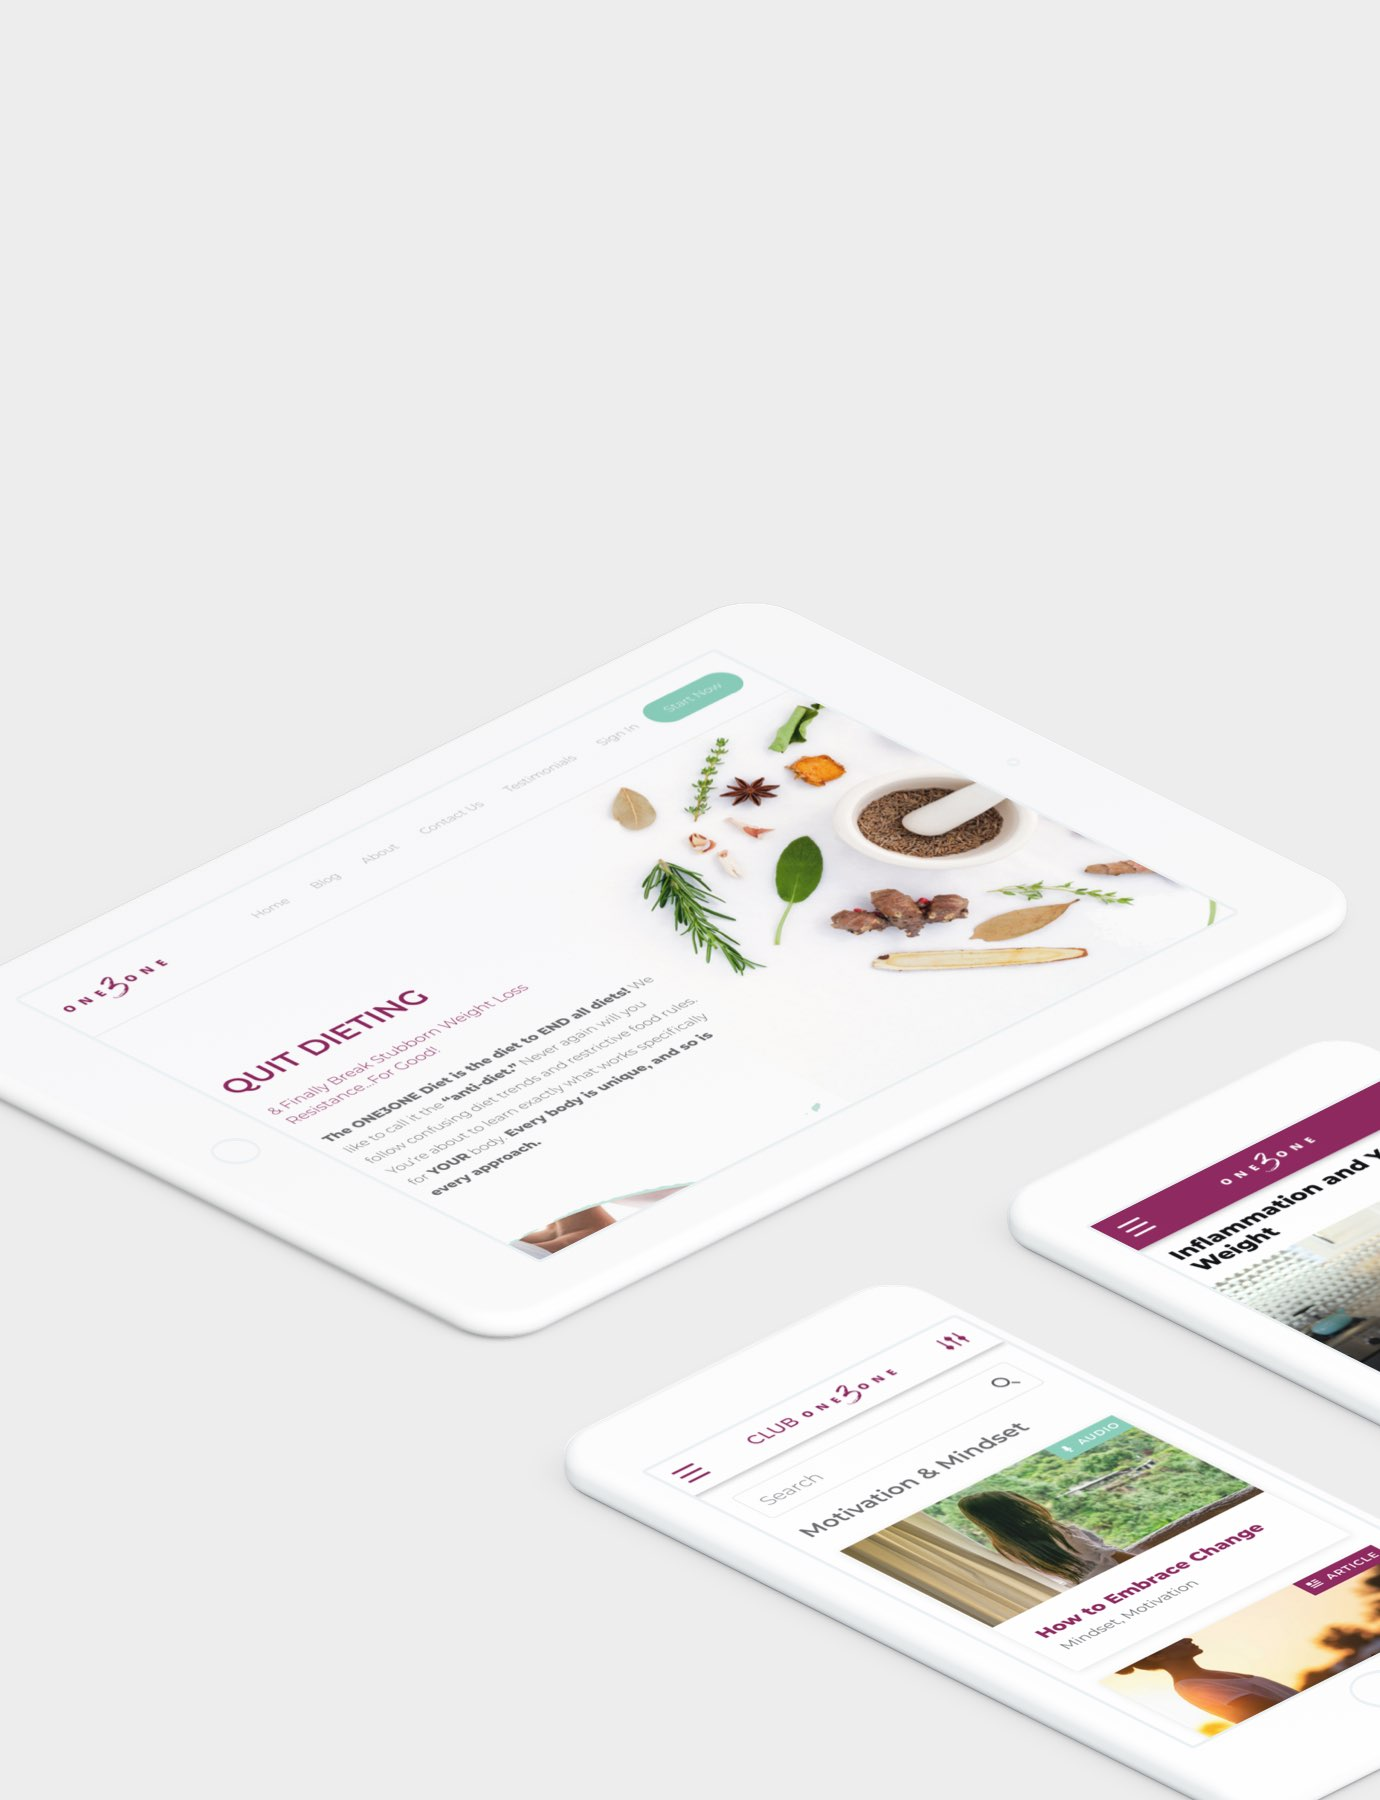 Digital Design and Marketing Agency created 131 by Chalene Johnson Desktop, Tablet, and Mobile App